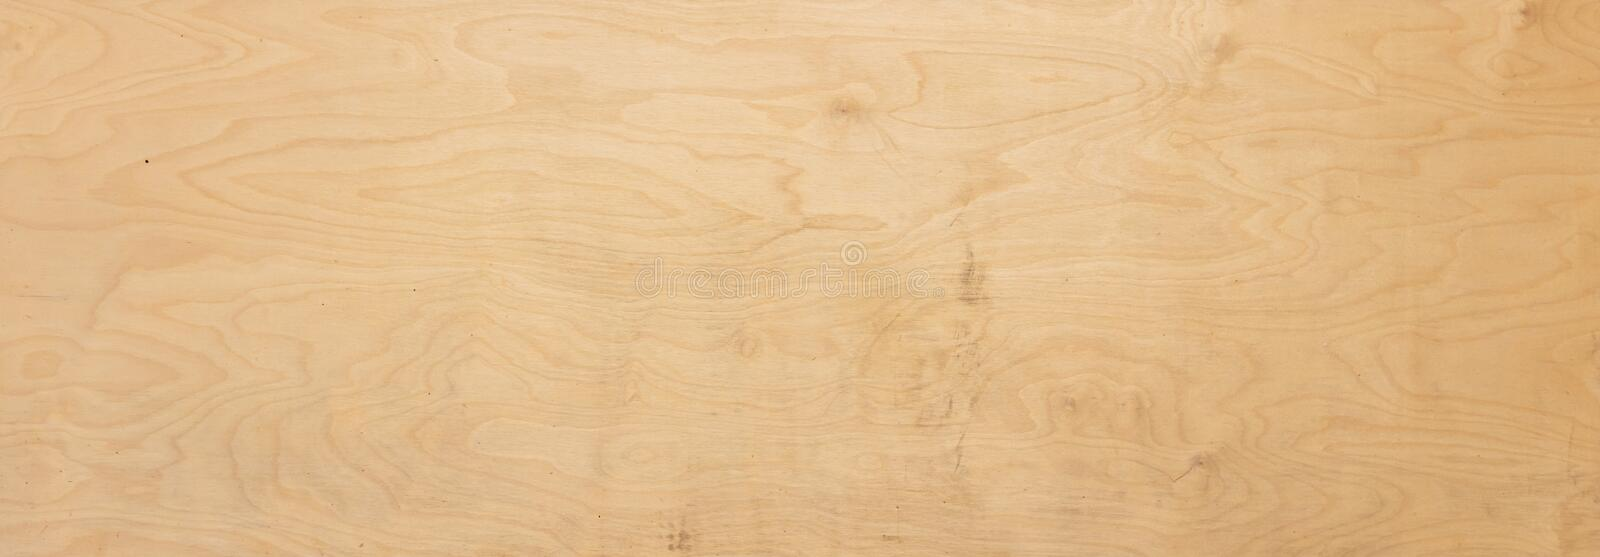 Wood surface for natural background stock image